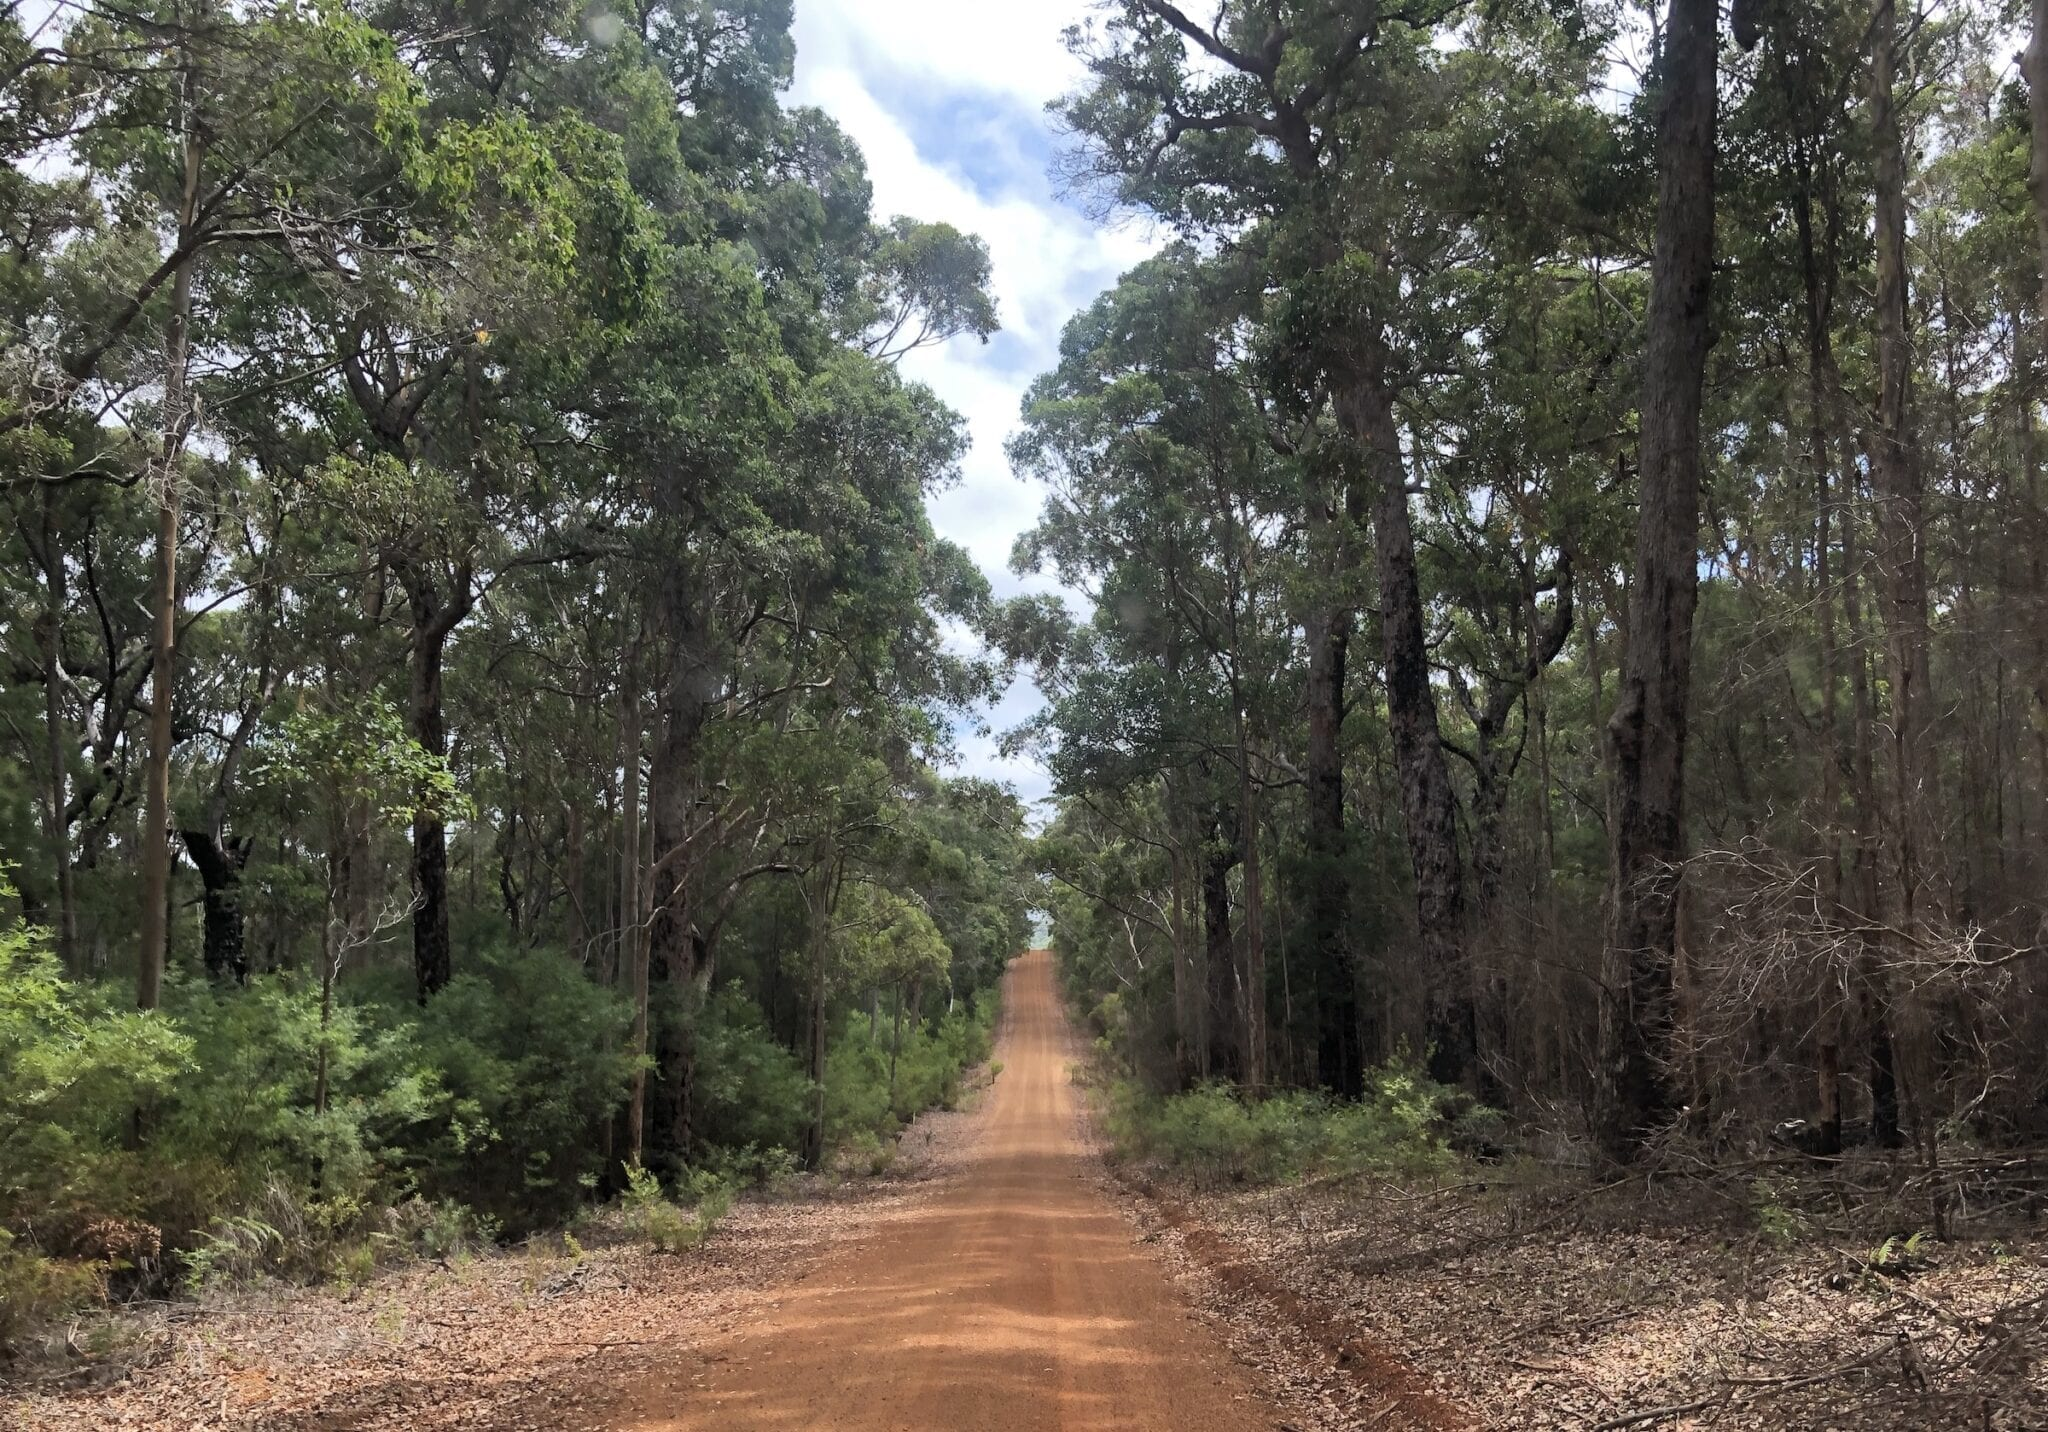 Chesapeake Road, South-West Western Australia – A Scenic Journey Through The Bush